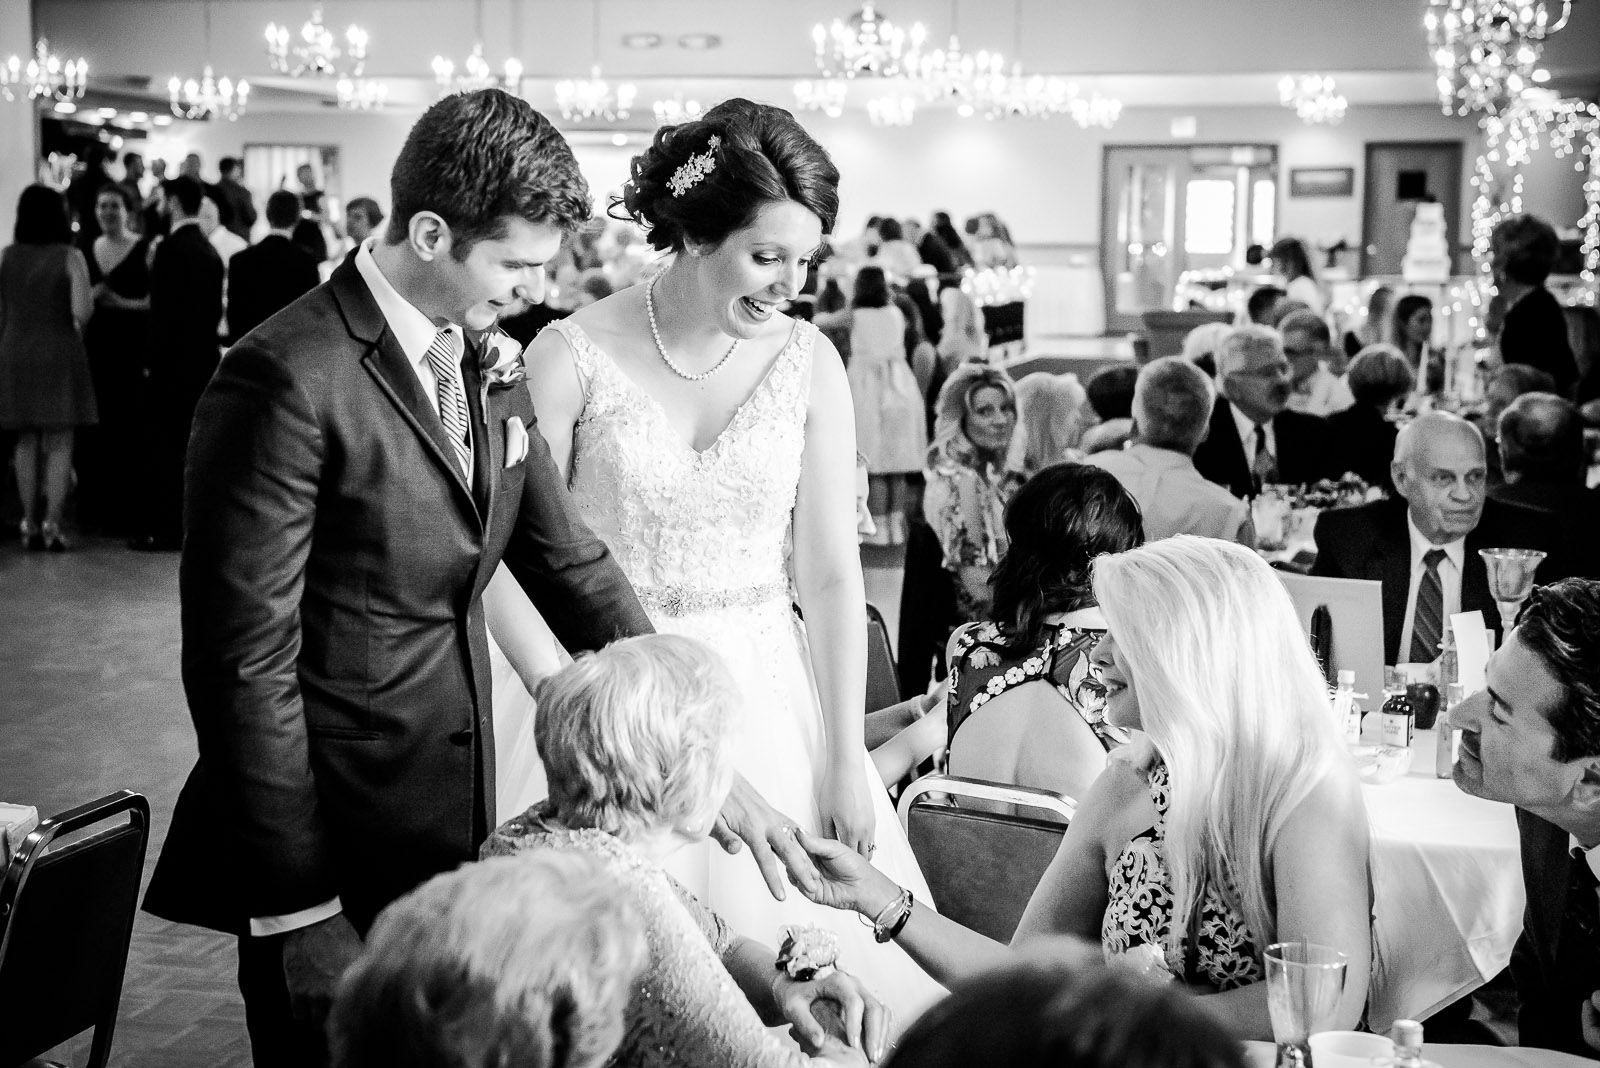 Eric_and_Christy_Photography_Blog_Wedding_Kelly_Michael-47